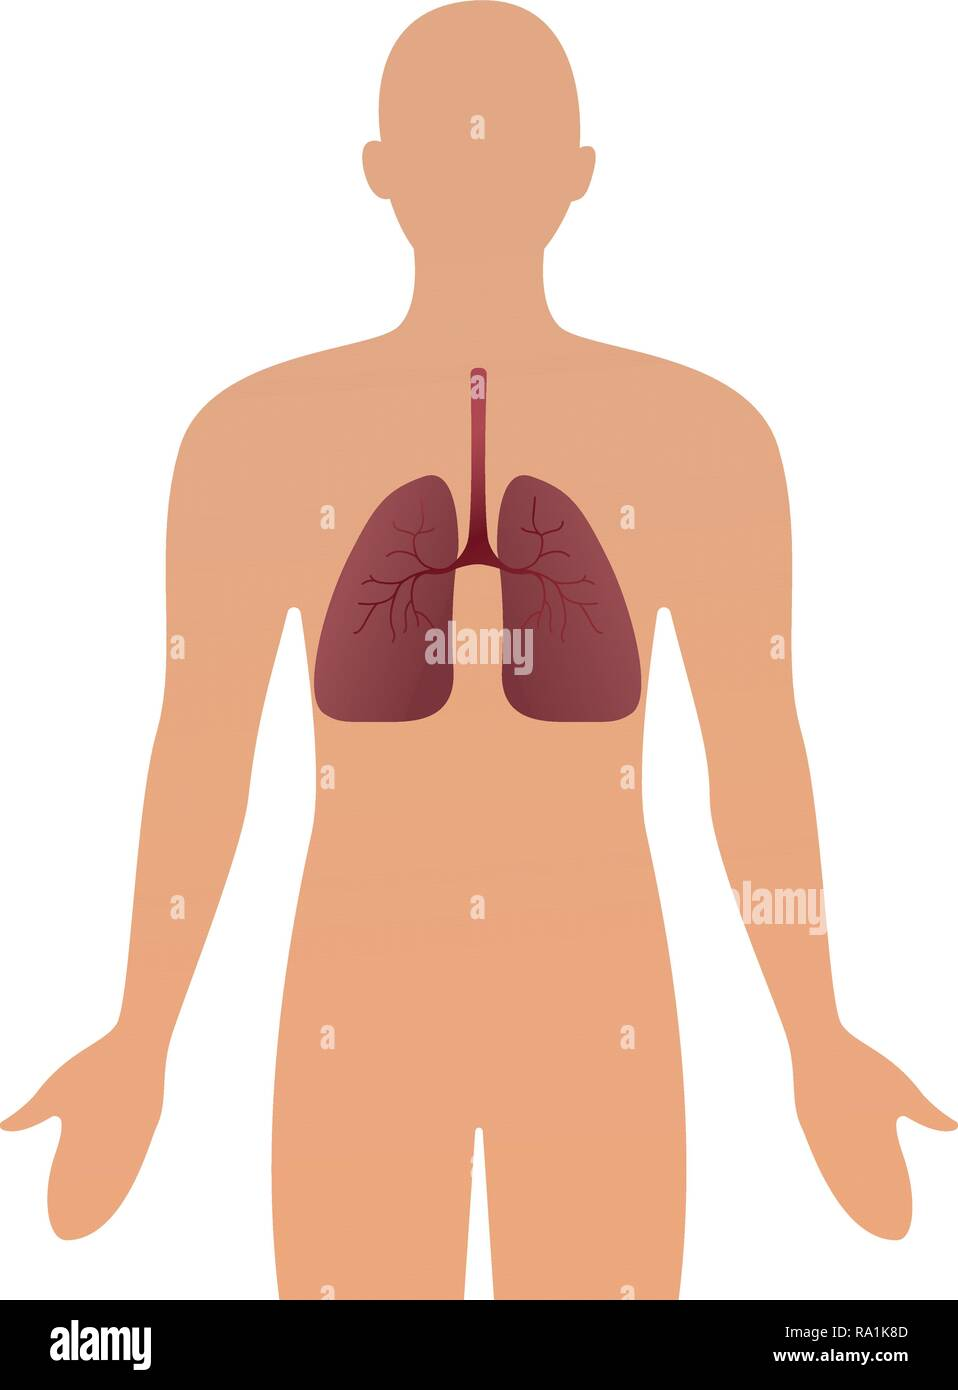 Human silhouette with inflamed respiratory system lungs showing diseases like asthma and bronchitis vector illustration. - Stock Image